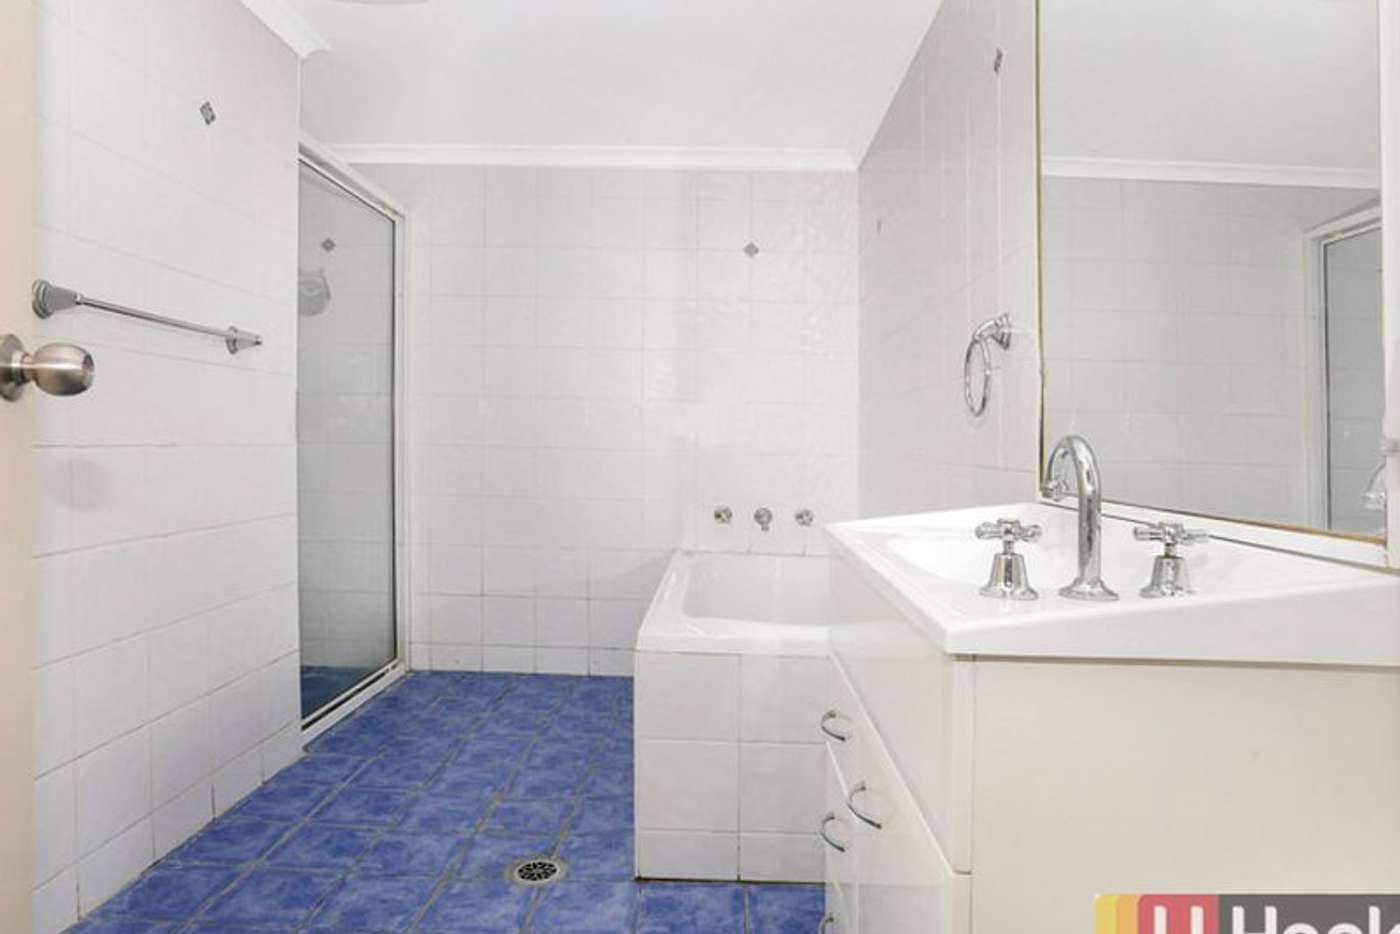 Fifth view of Homely apartment listing, 3/82-84 Beaconsfield St, Silverwater NSW 2128